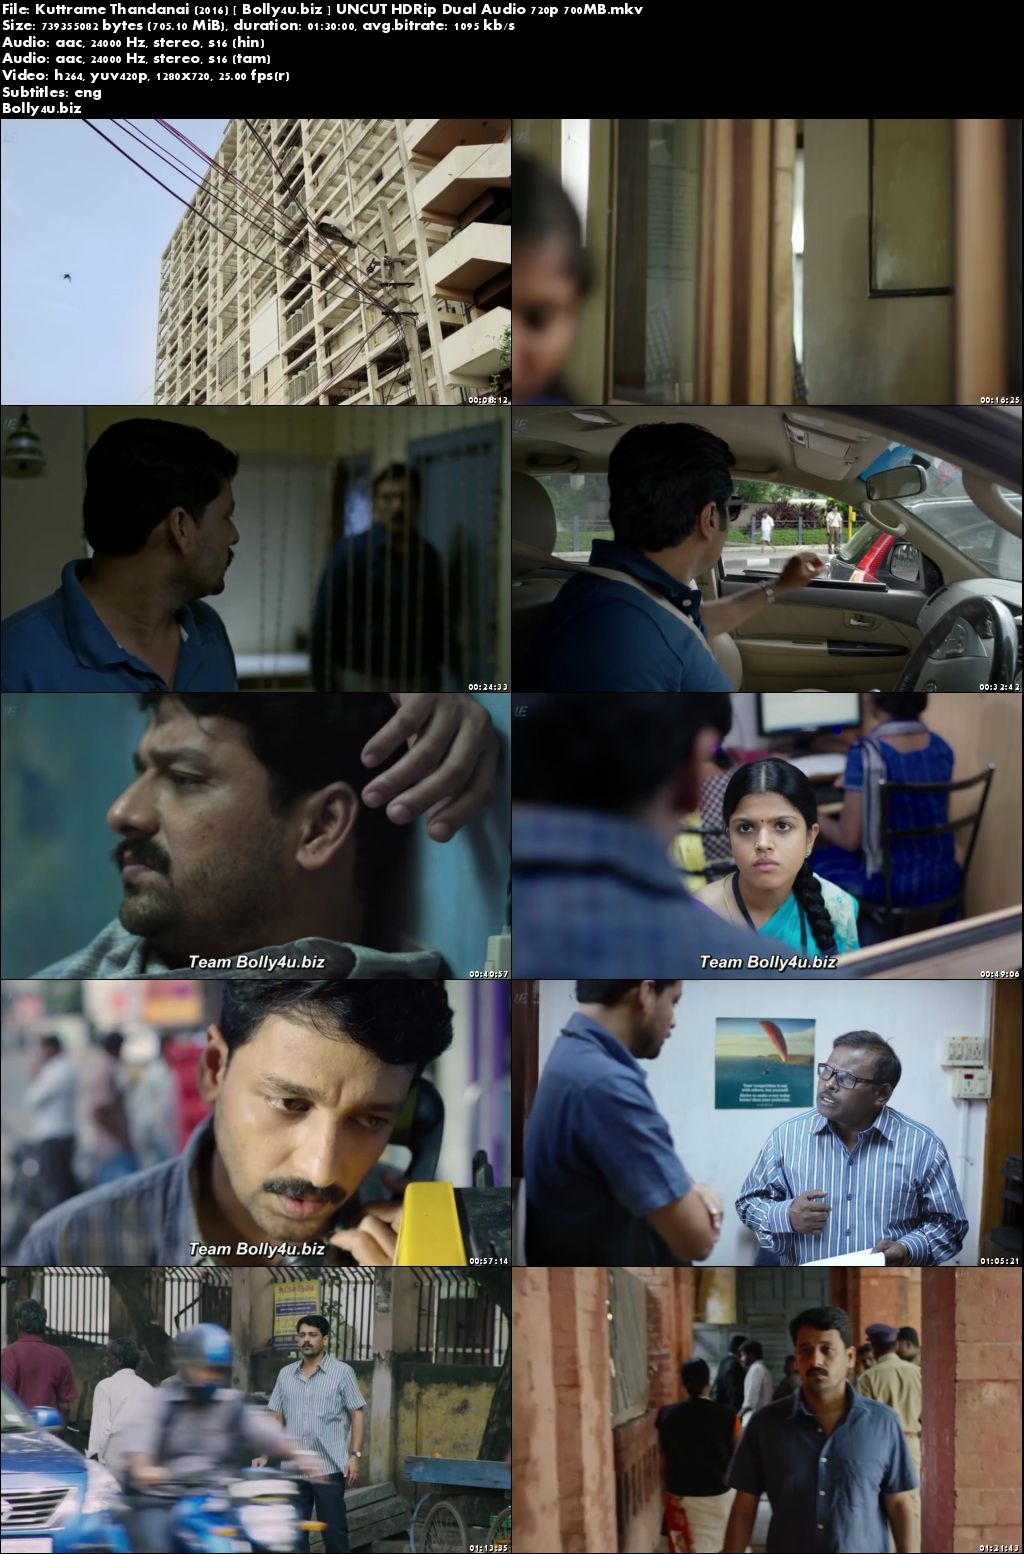 Kuttrame Thandanai 2016 HDRip 700MB UNCUT Hindi Dual Audio 720p Download